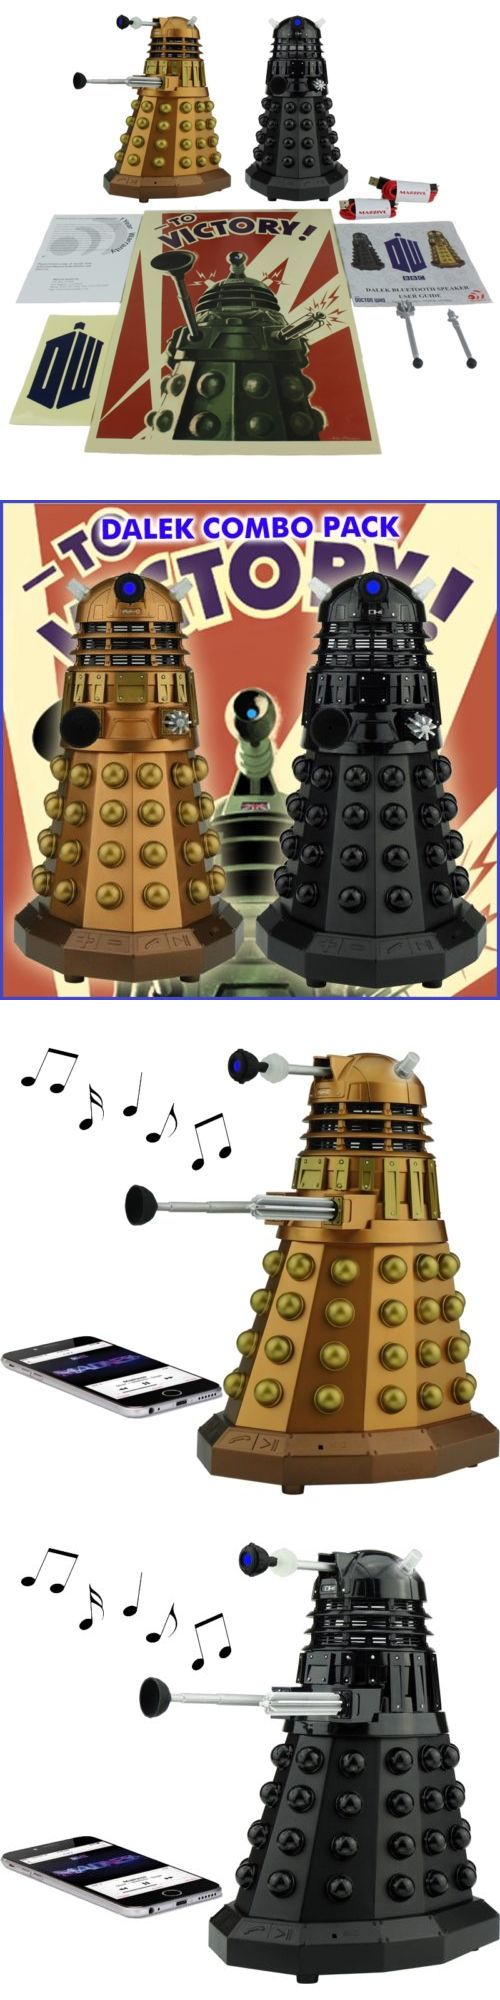 Bluetooth Handsfree Car Kits: Doctor Who Dalek Portable Bluetooth Speaker Combo Pack With Leds And Sound Effects -> BUY IT NOW ONLY: $89.95 on eBay!